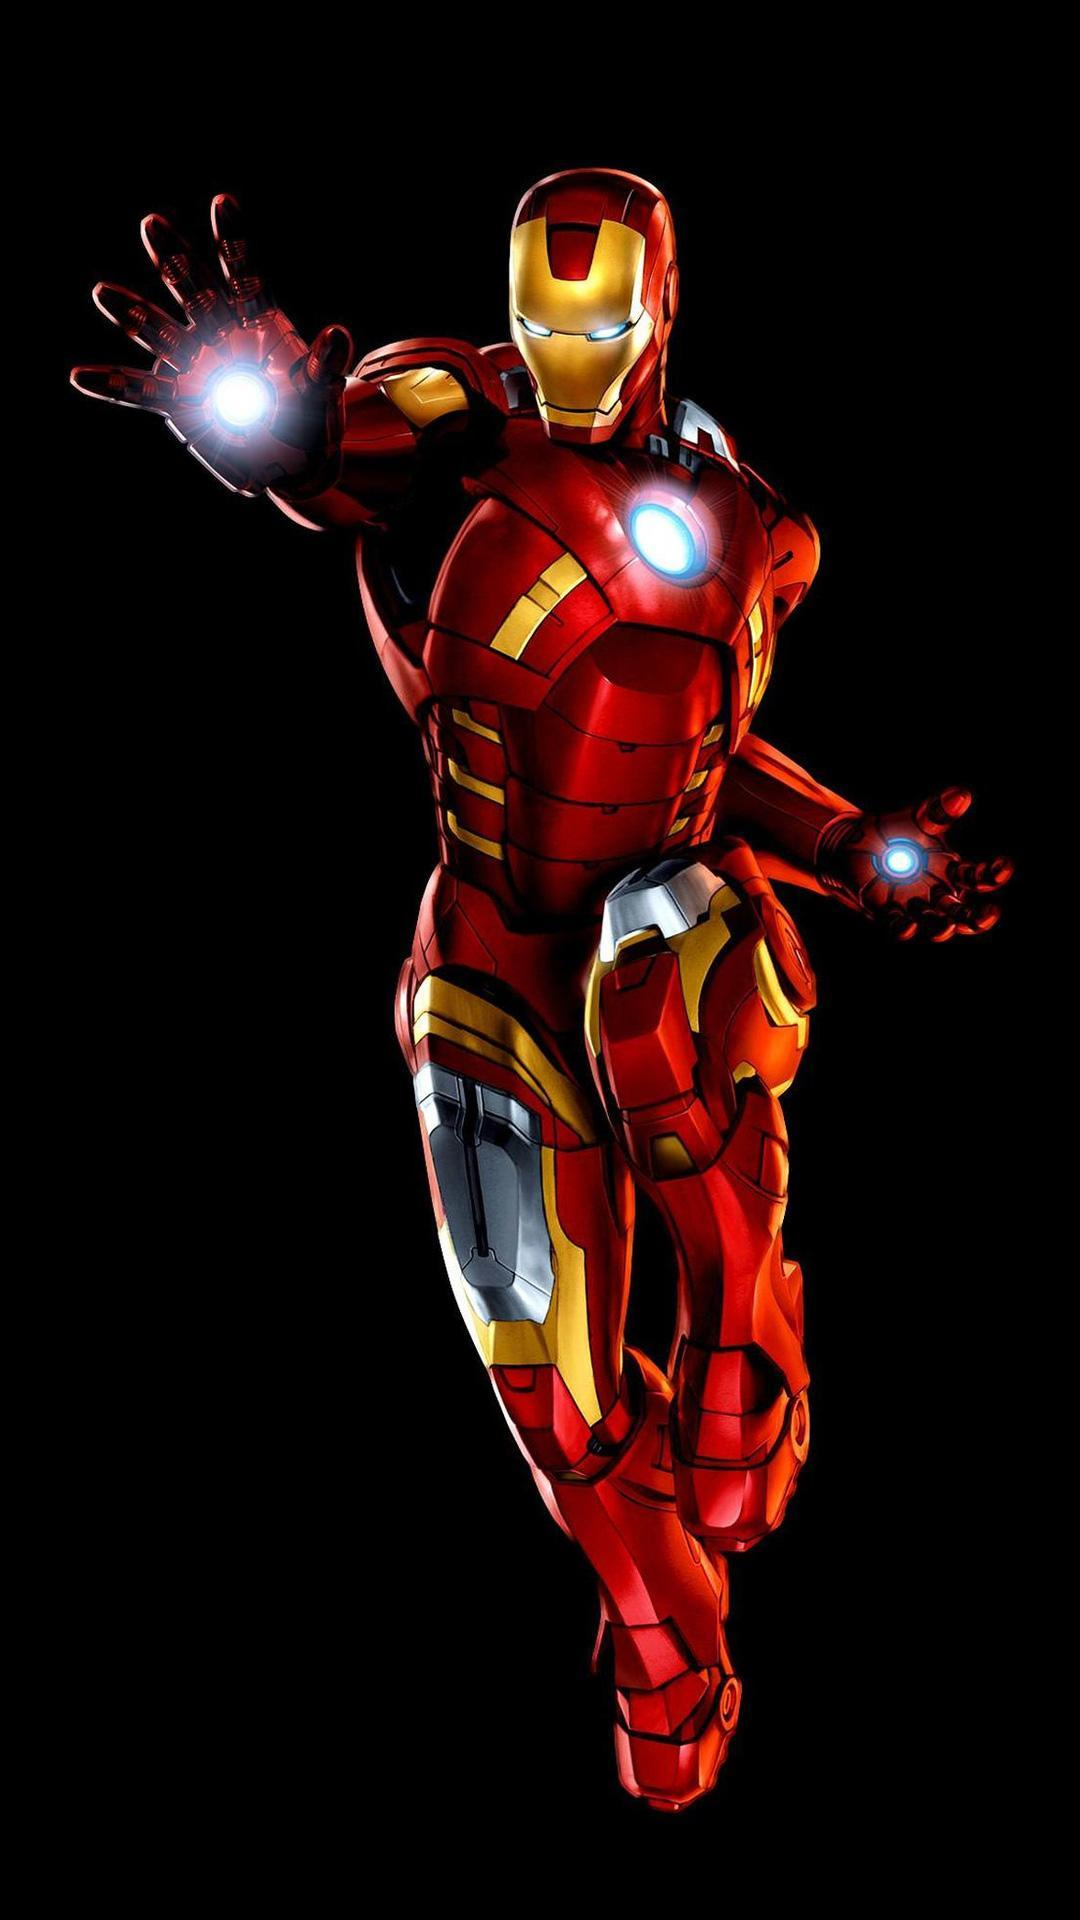 SuperHeroes Wallpaper Full HD/4K Only for Android - APK ...